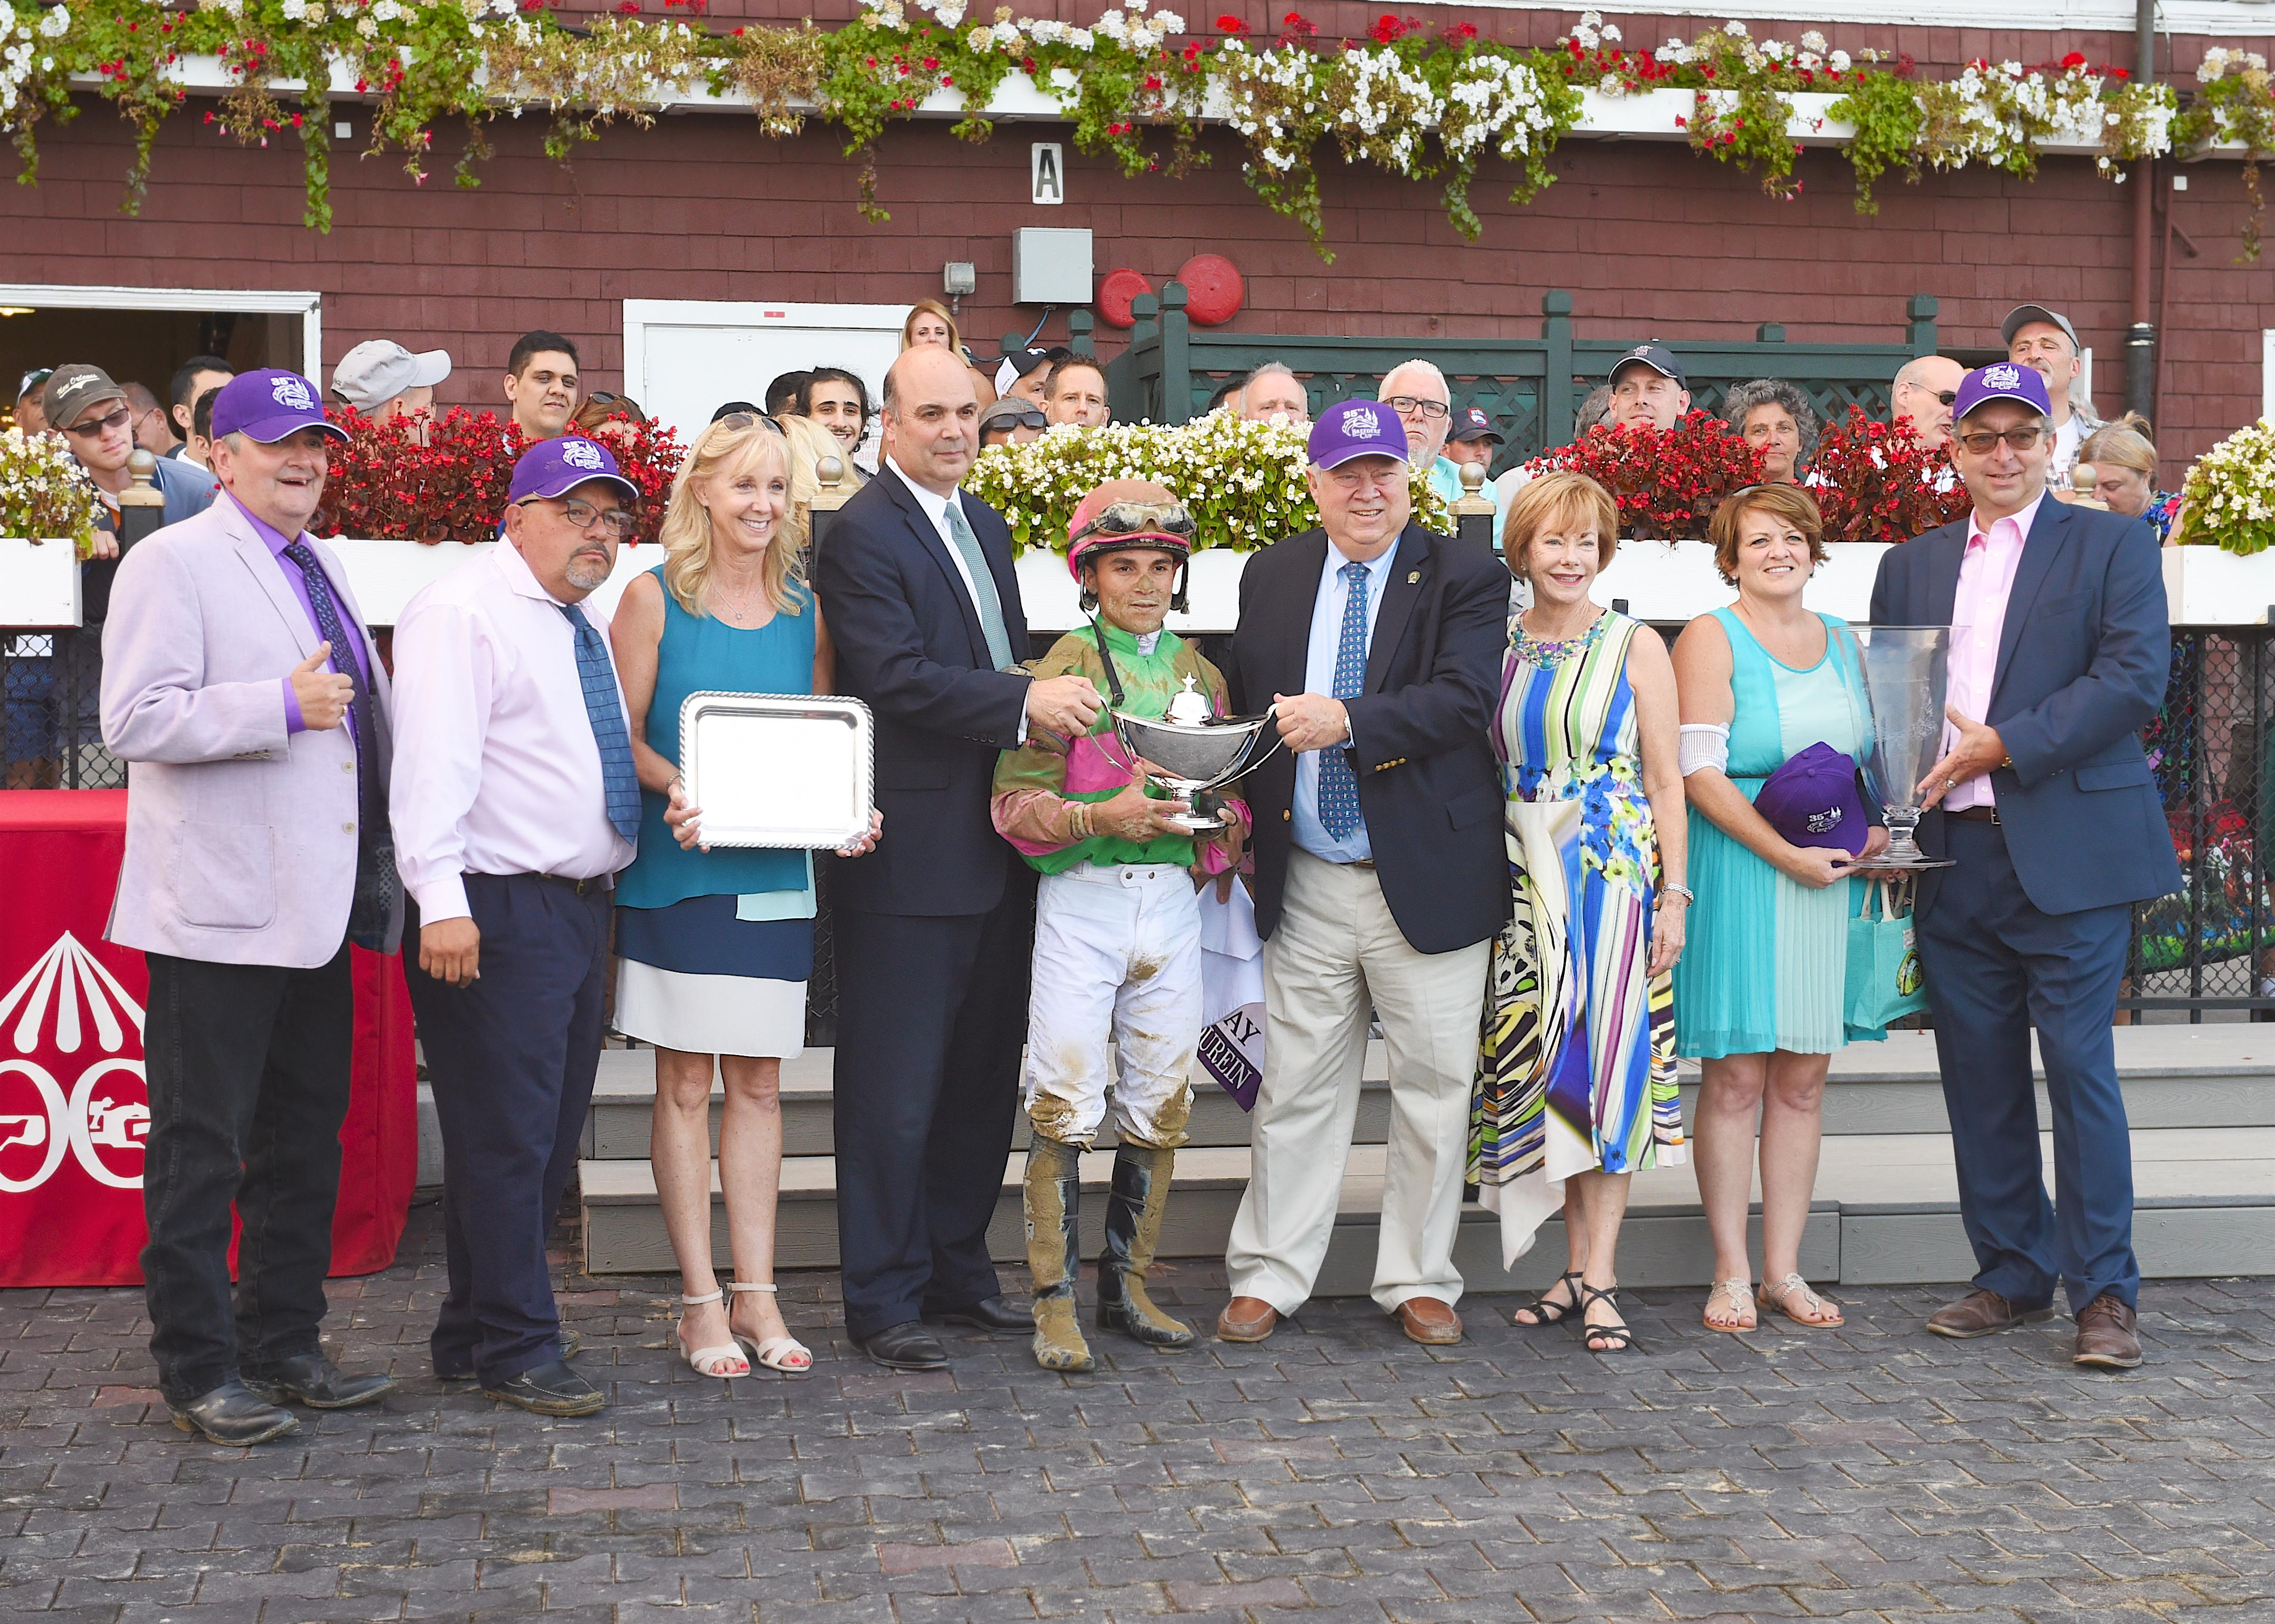 Contessa (right) in the Spinaway winner's circle.